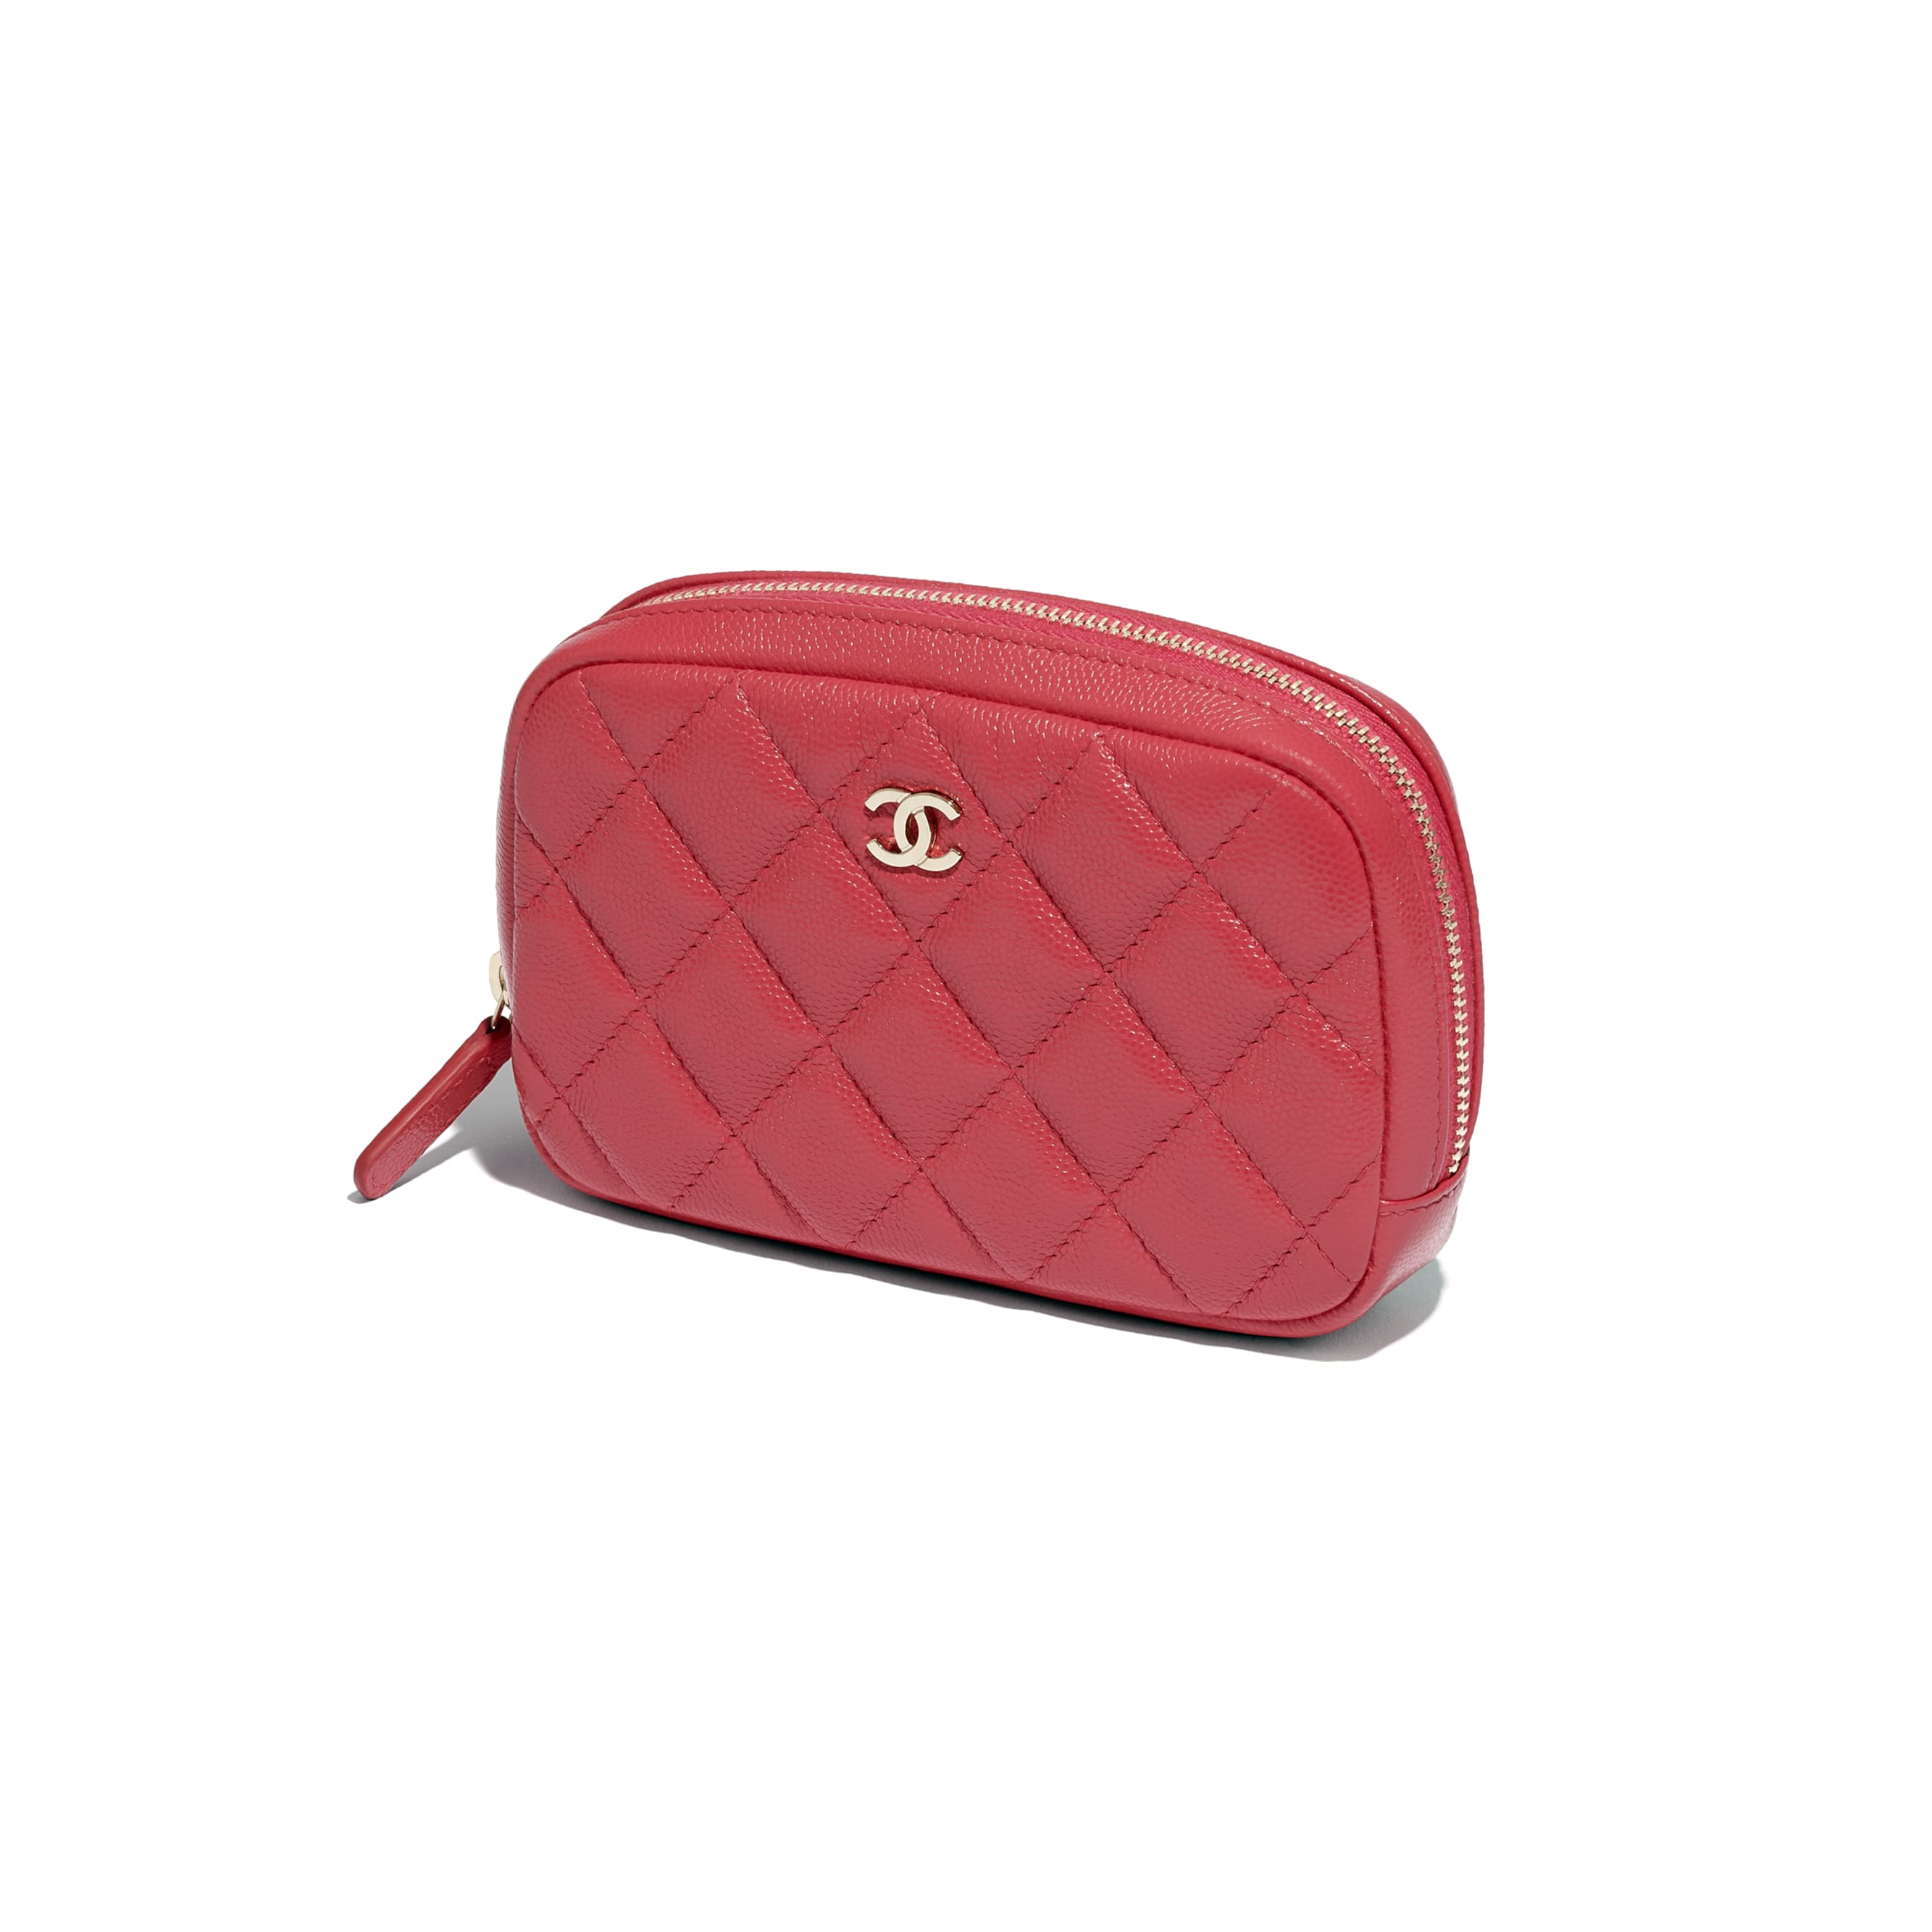 Classic Case - Red - Grained Calfskin & Gold-Tone Metal - CHANEL - Extra view - see standard sized version